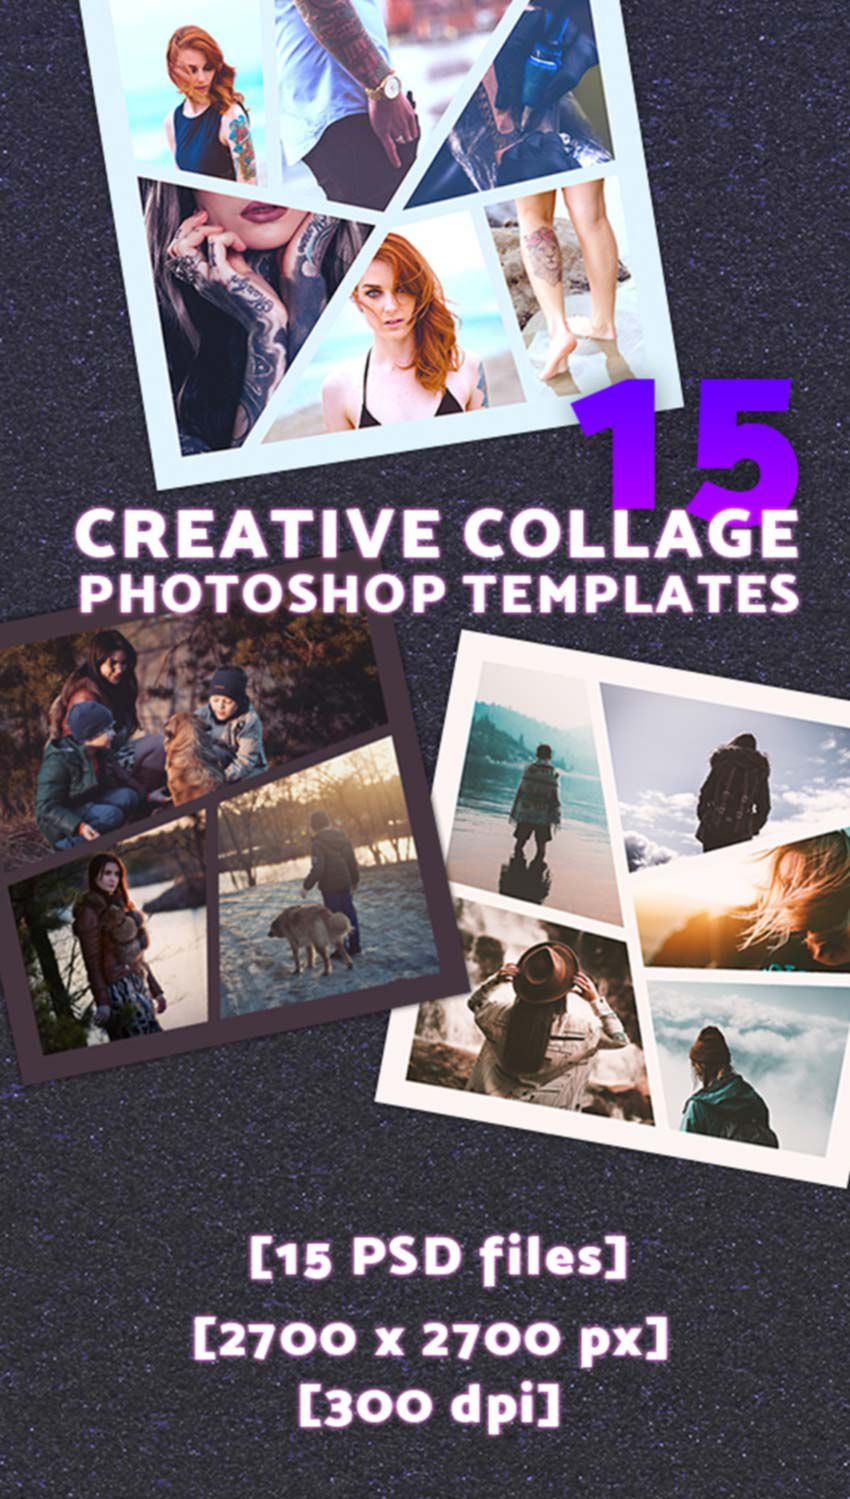 004 Wonderful Free Photo Collage Template No Download High Definition Full